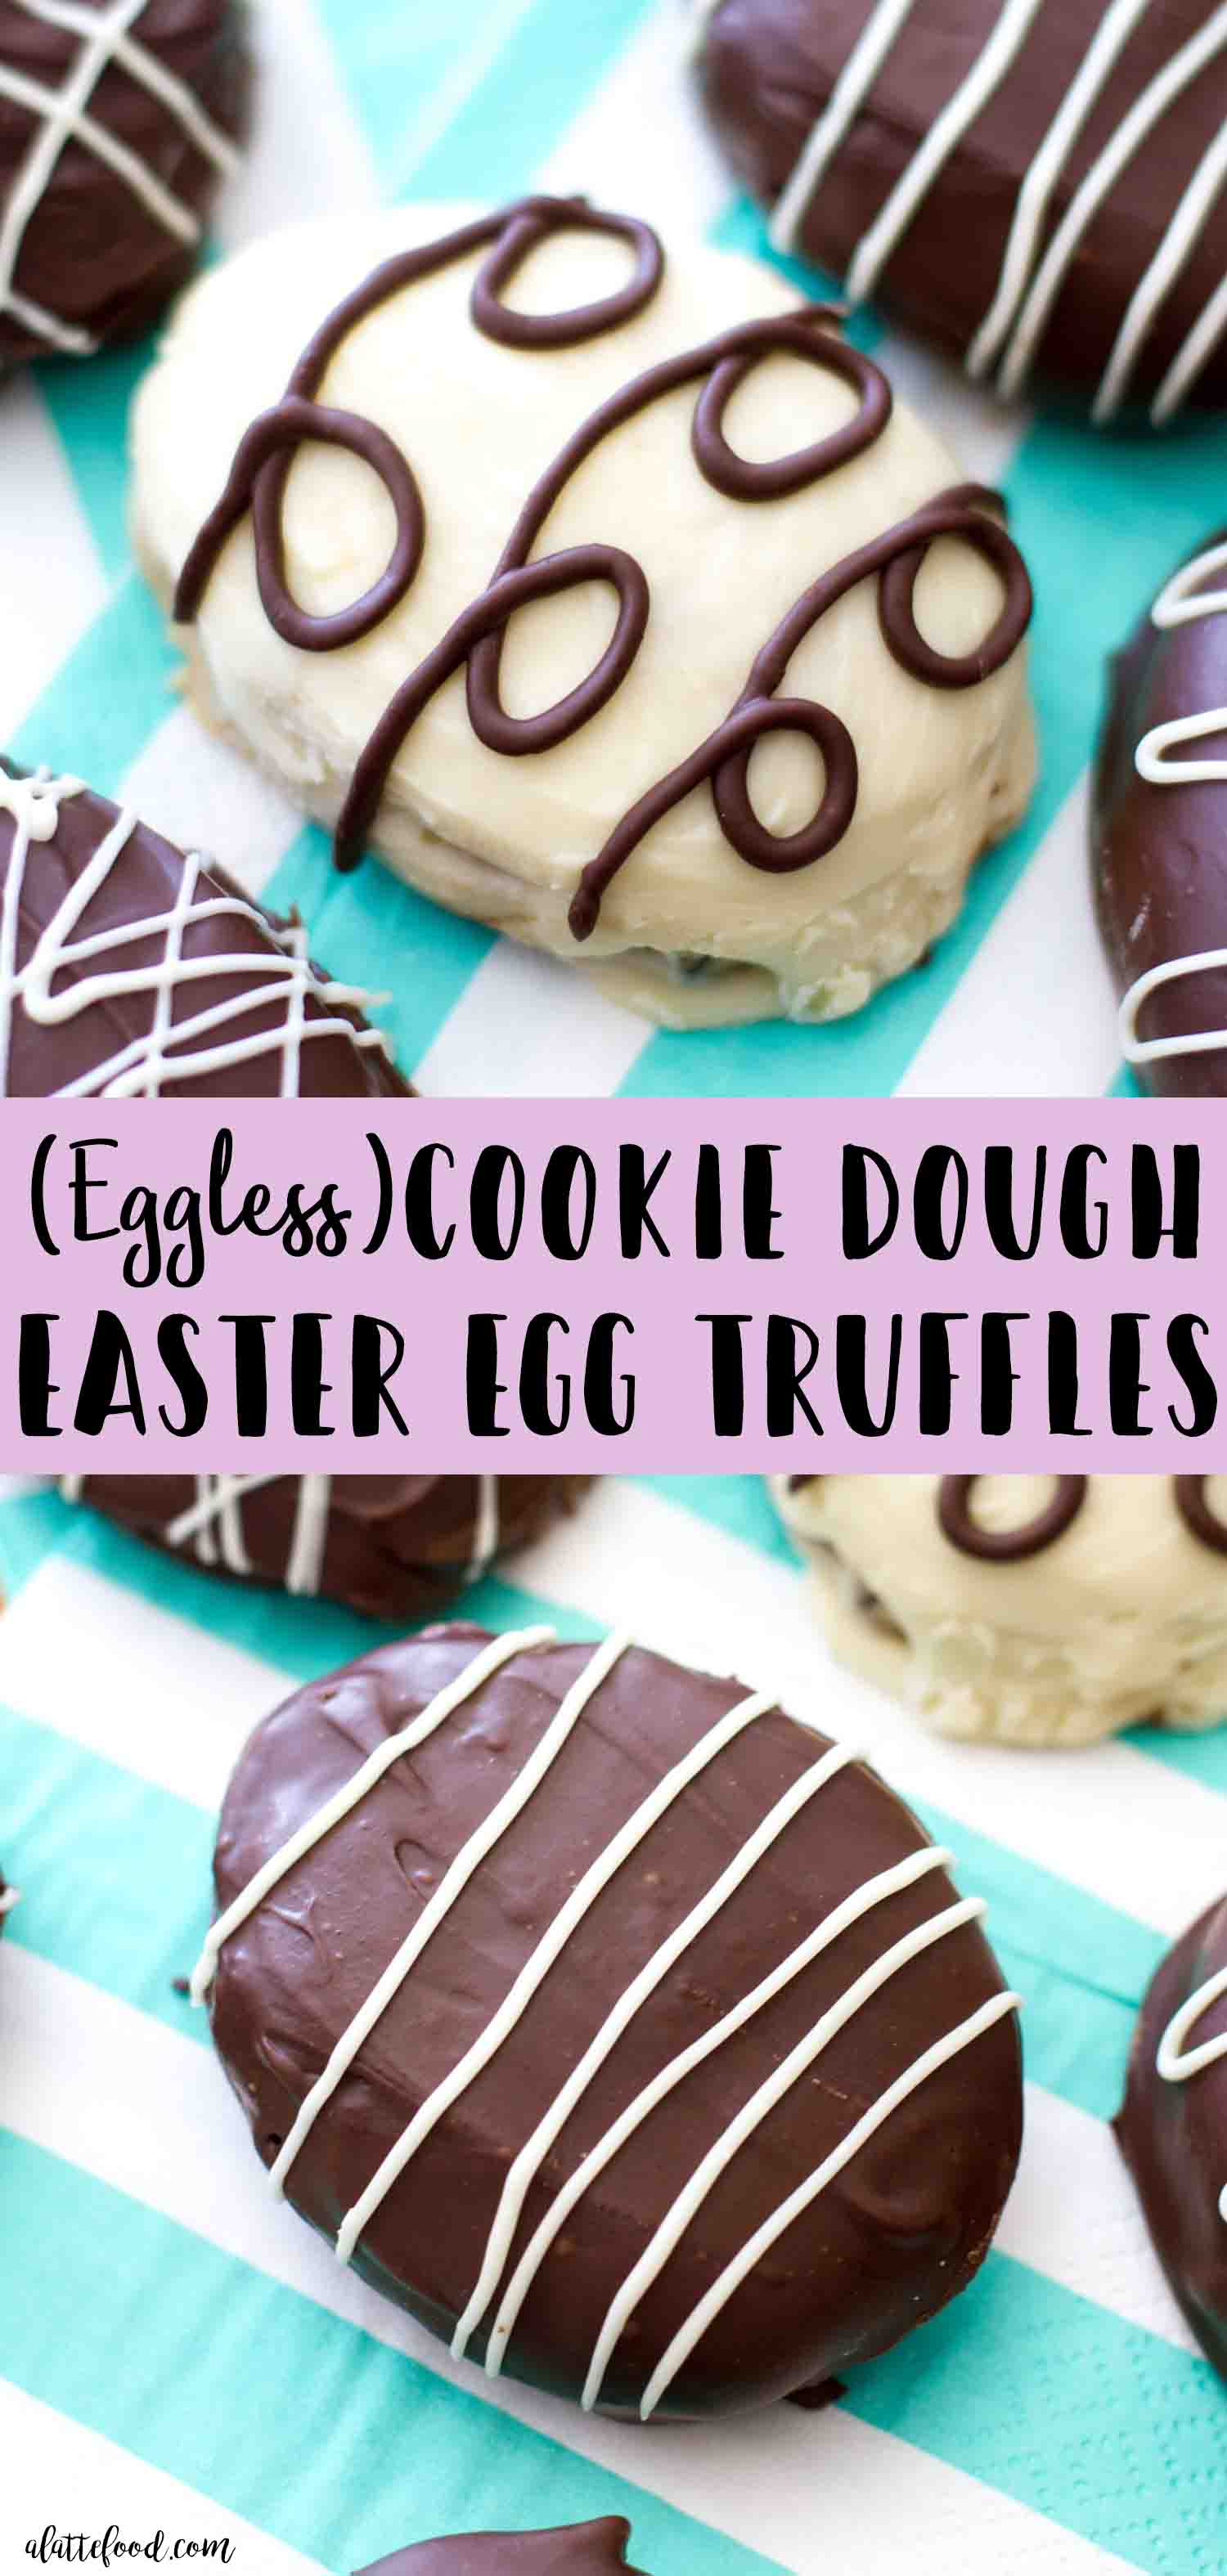 Homemade eggless cookie dough easter egg truffles are dipped in chocolate and make an easy Easter dessert!